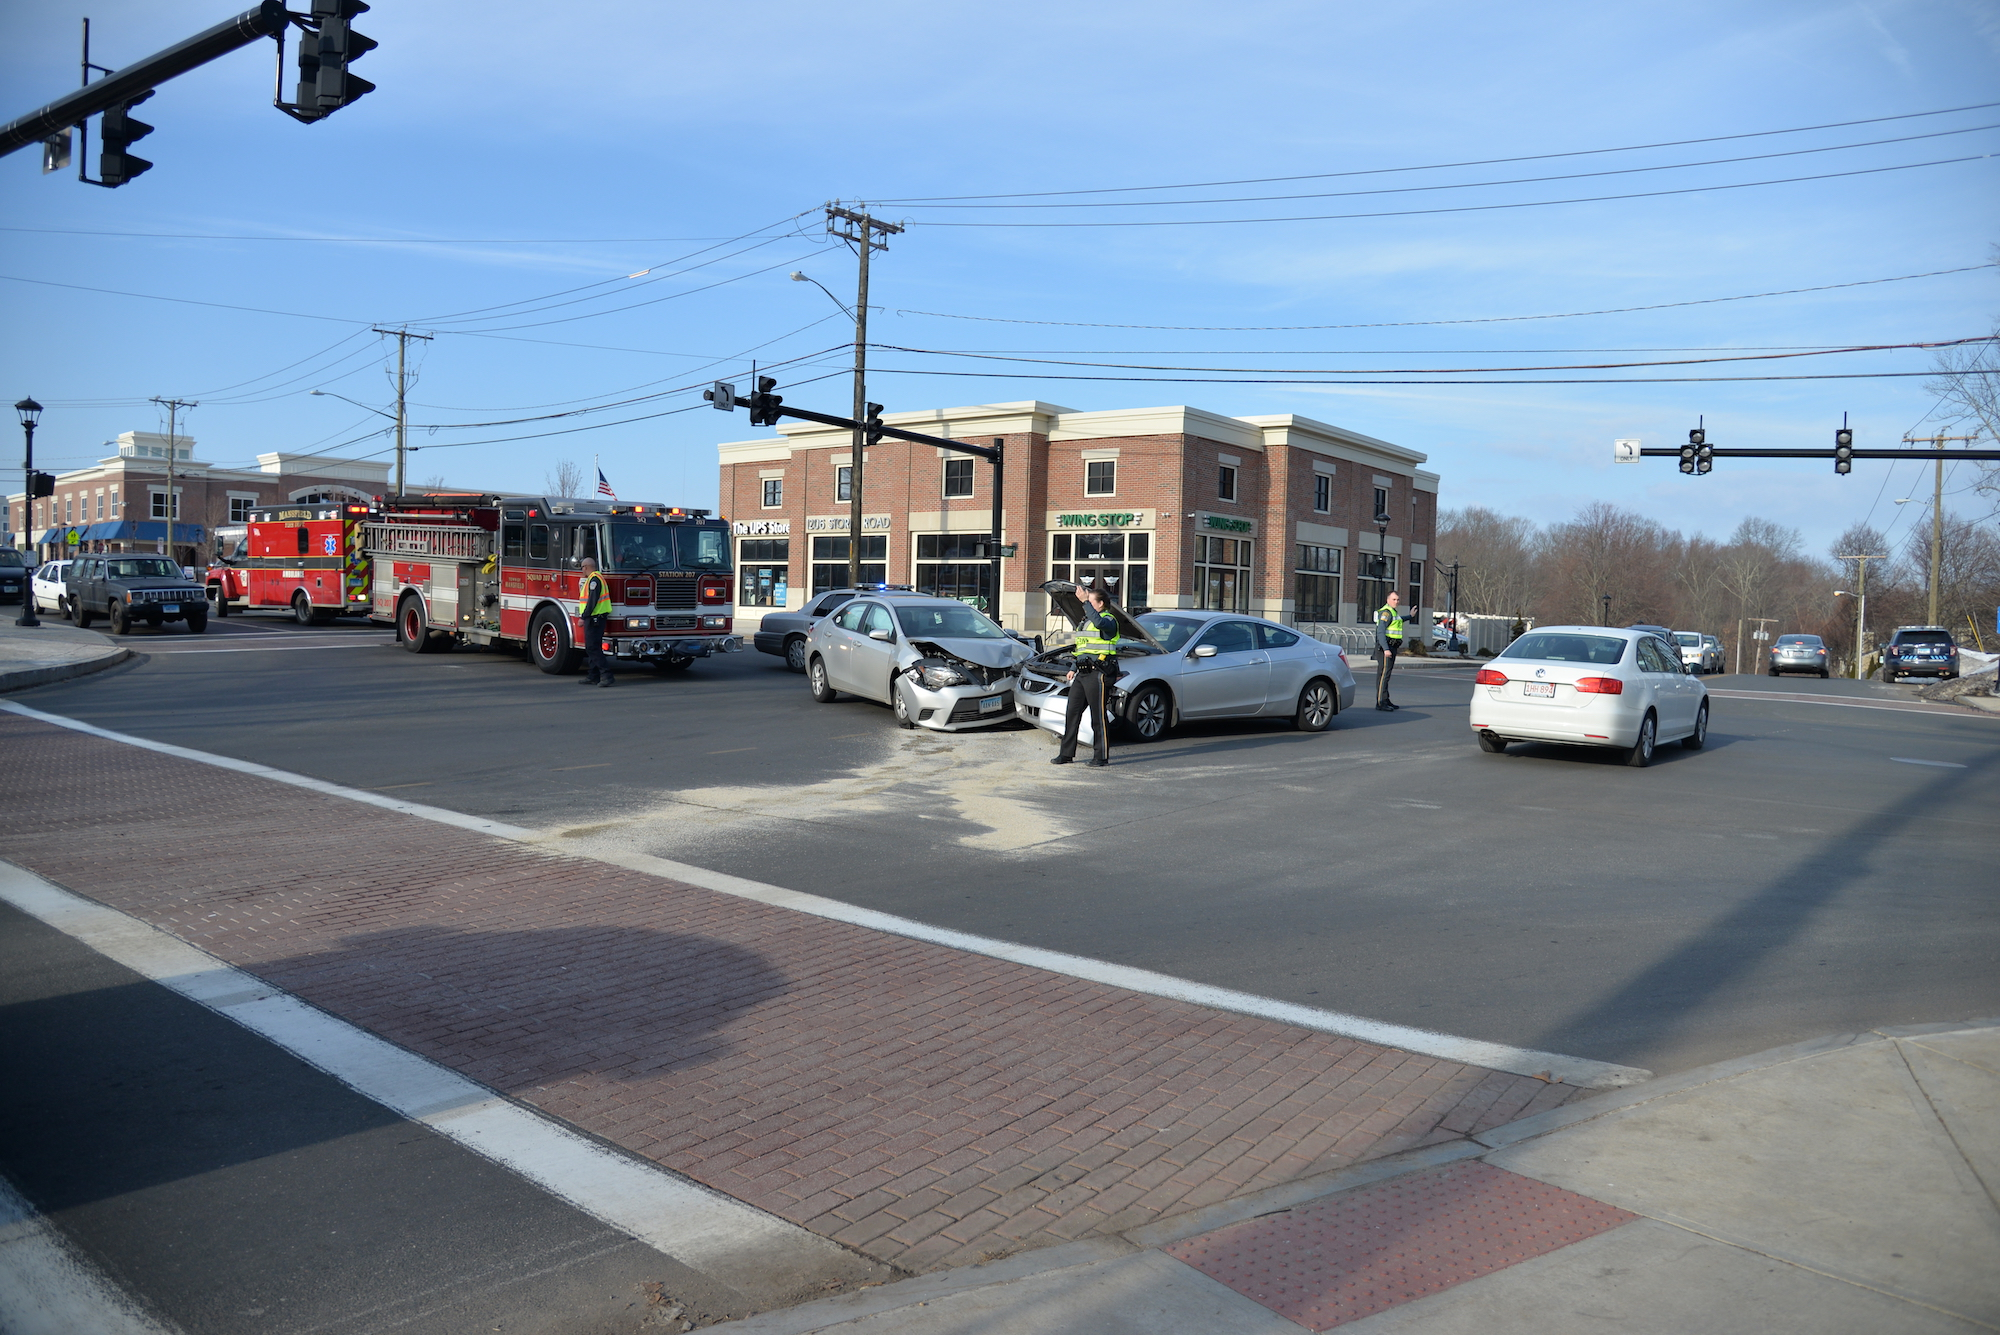 UConn police direct traffic around an accident that occurred at the intersection of South Eagleville Road and Interstate 95 on Wednesday afternoon. No one was seriously injured. (Amar Batra/The Daily Campus)